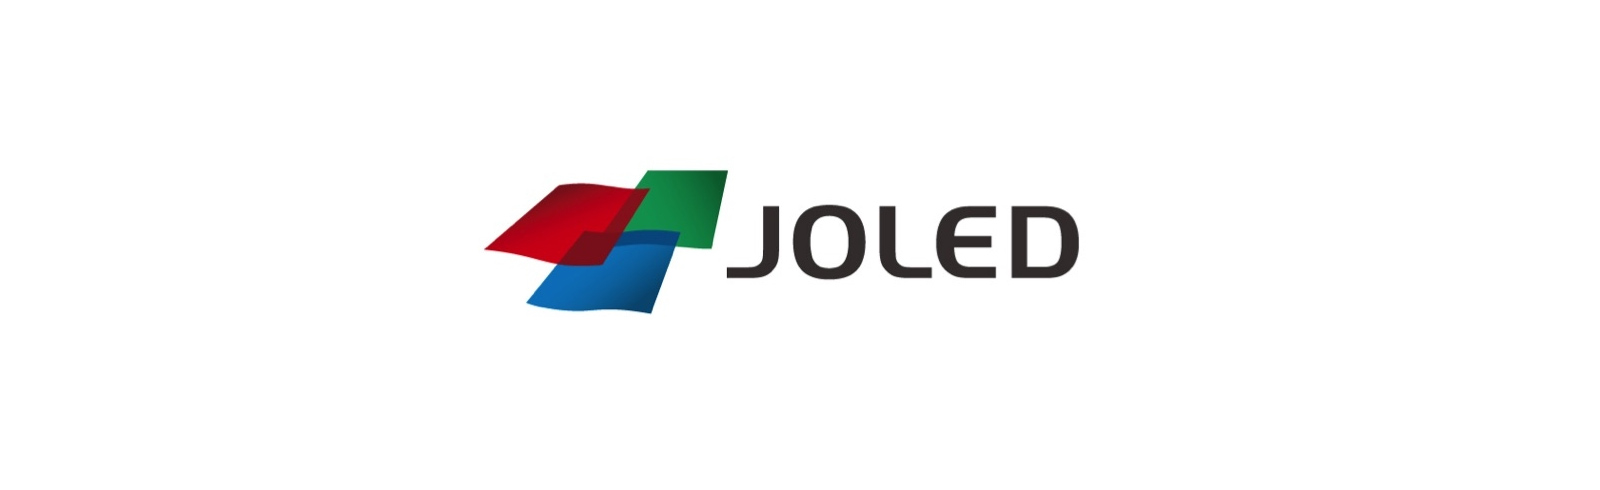 JOLED starts production of G5.5 printed OLEDs